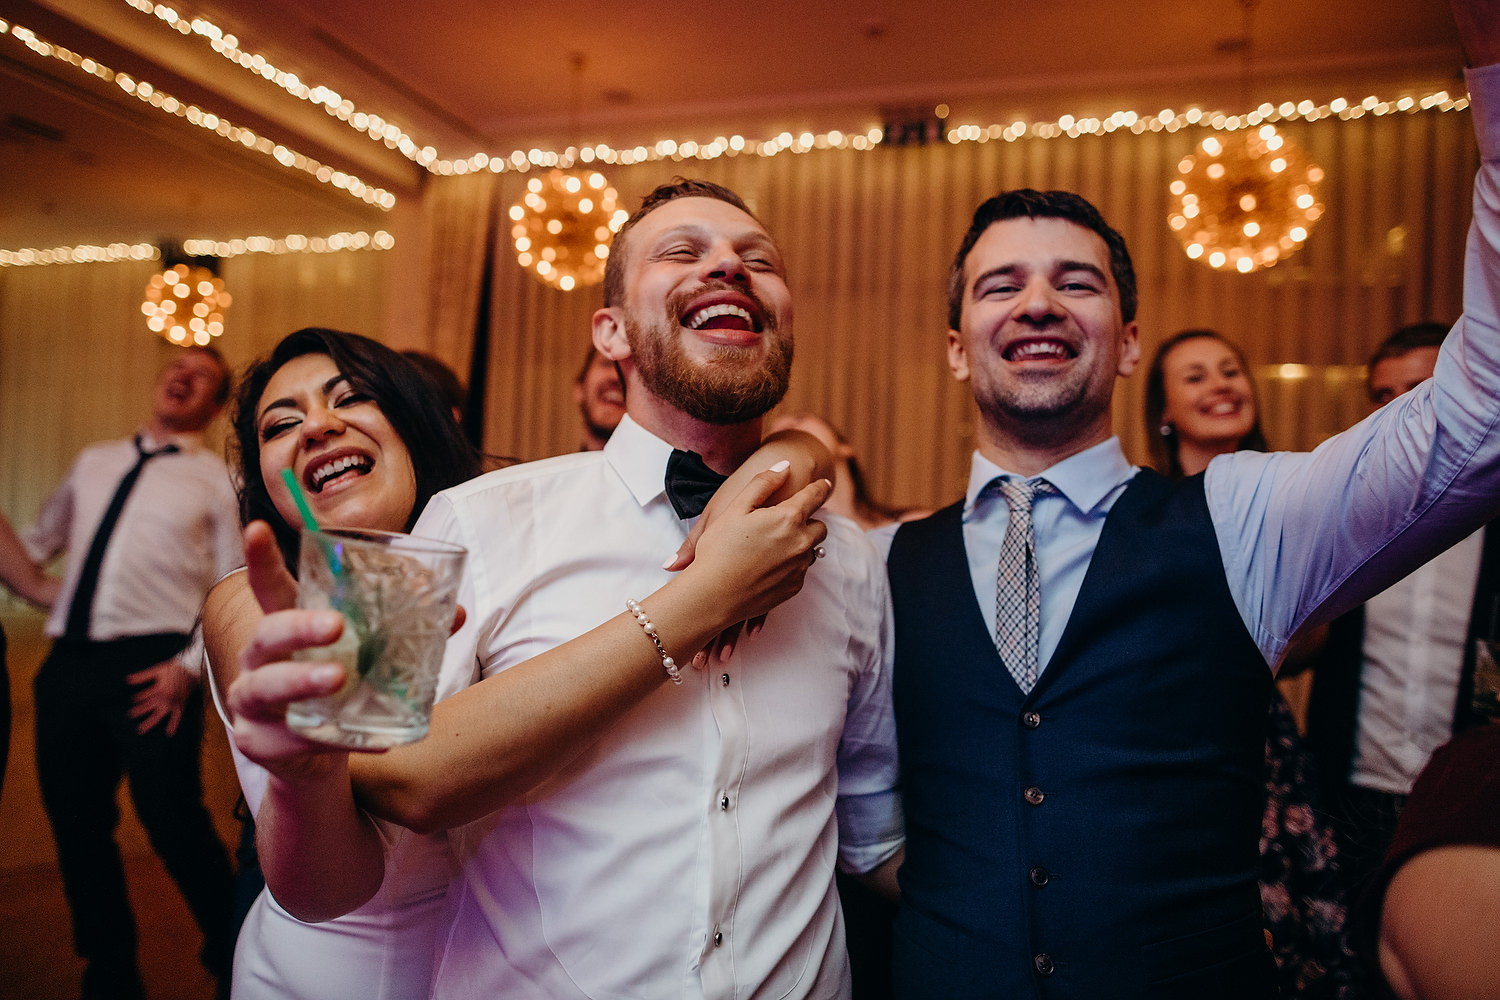 guests singing along at wedding